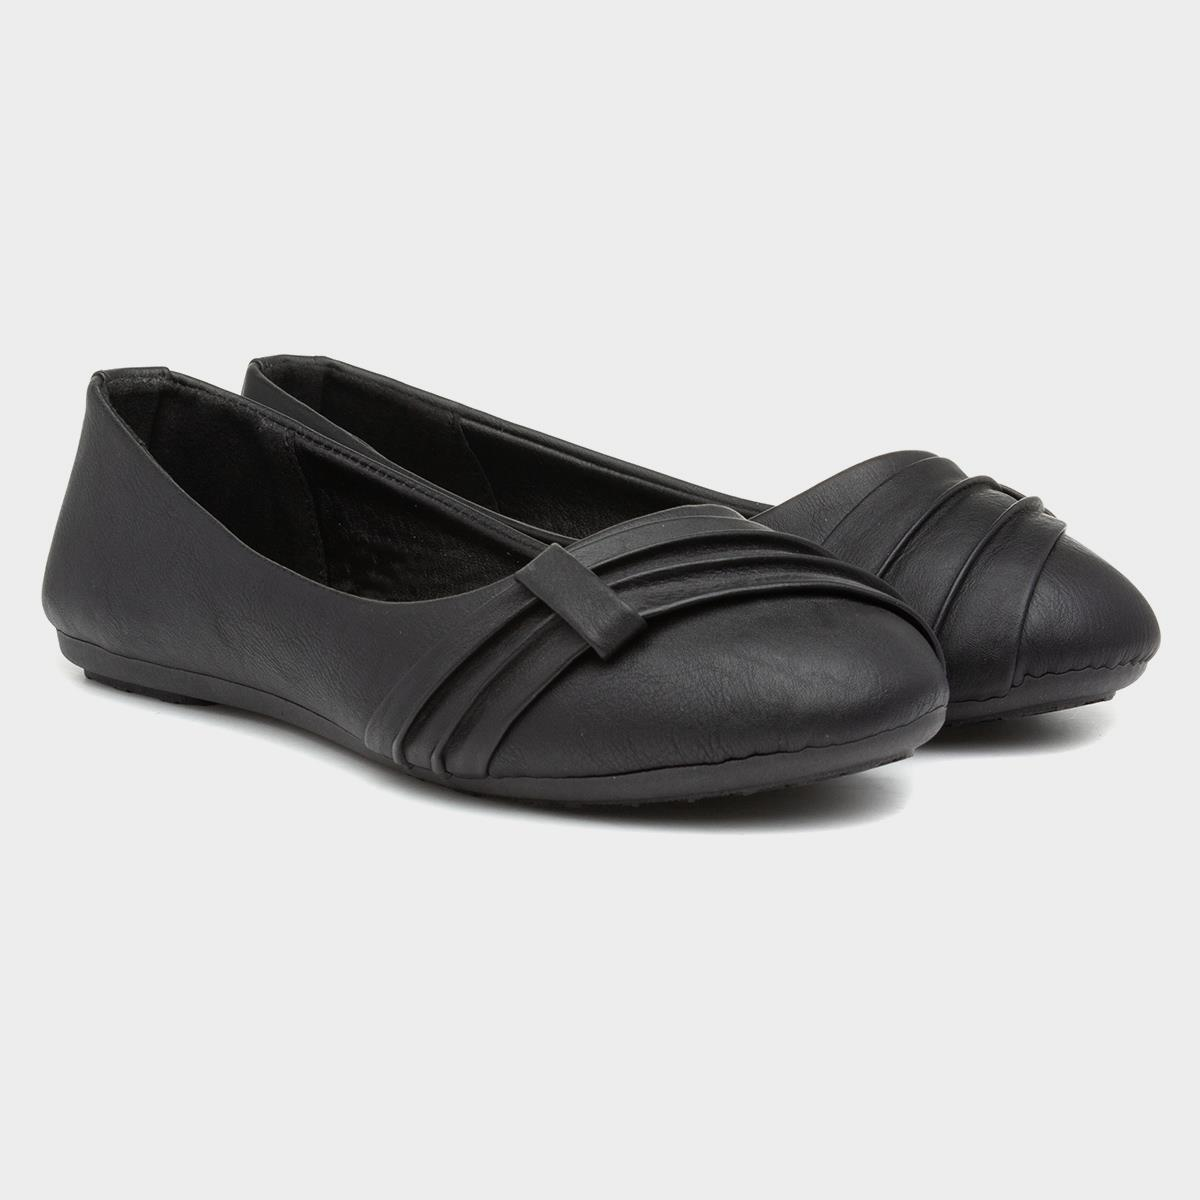 Womens Ballerina Shoe Front Pleated Shoe in Black by Lilley